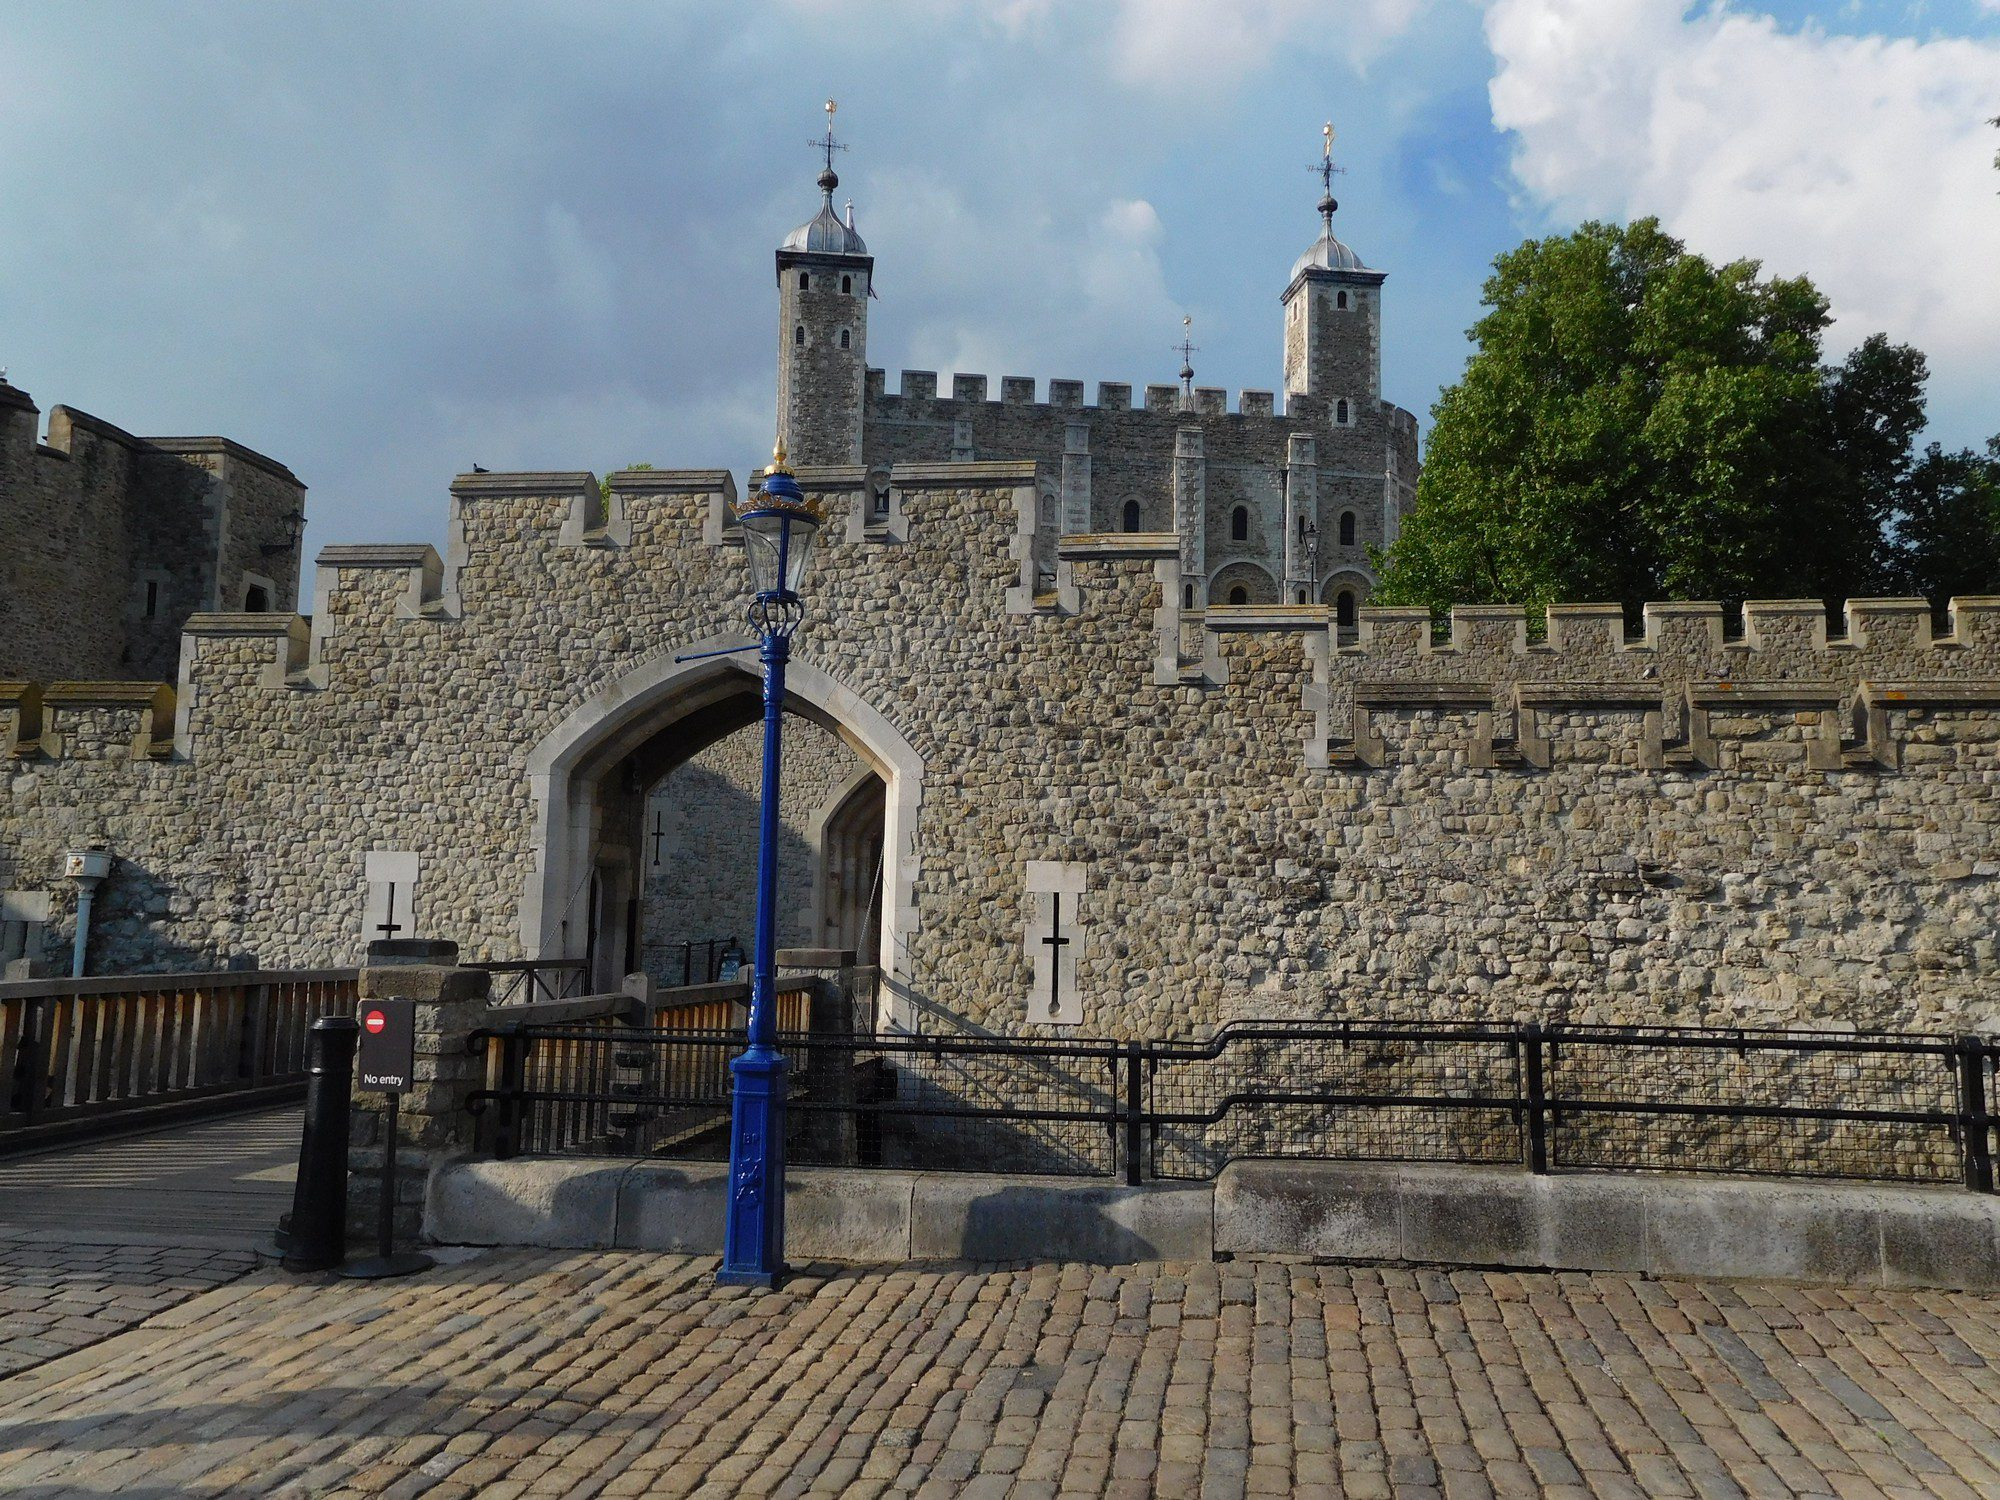 Eingang zum Tower of London